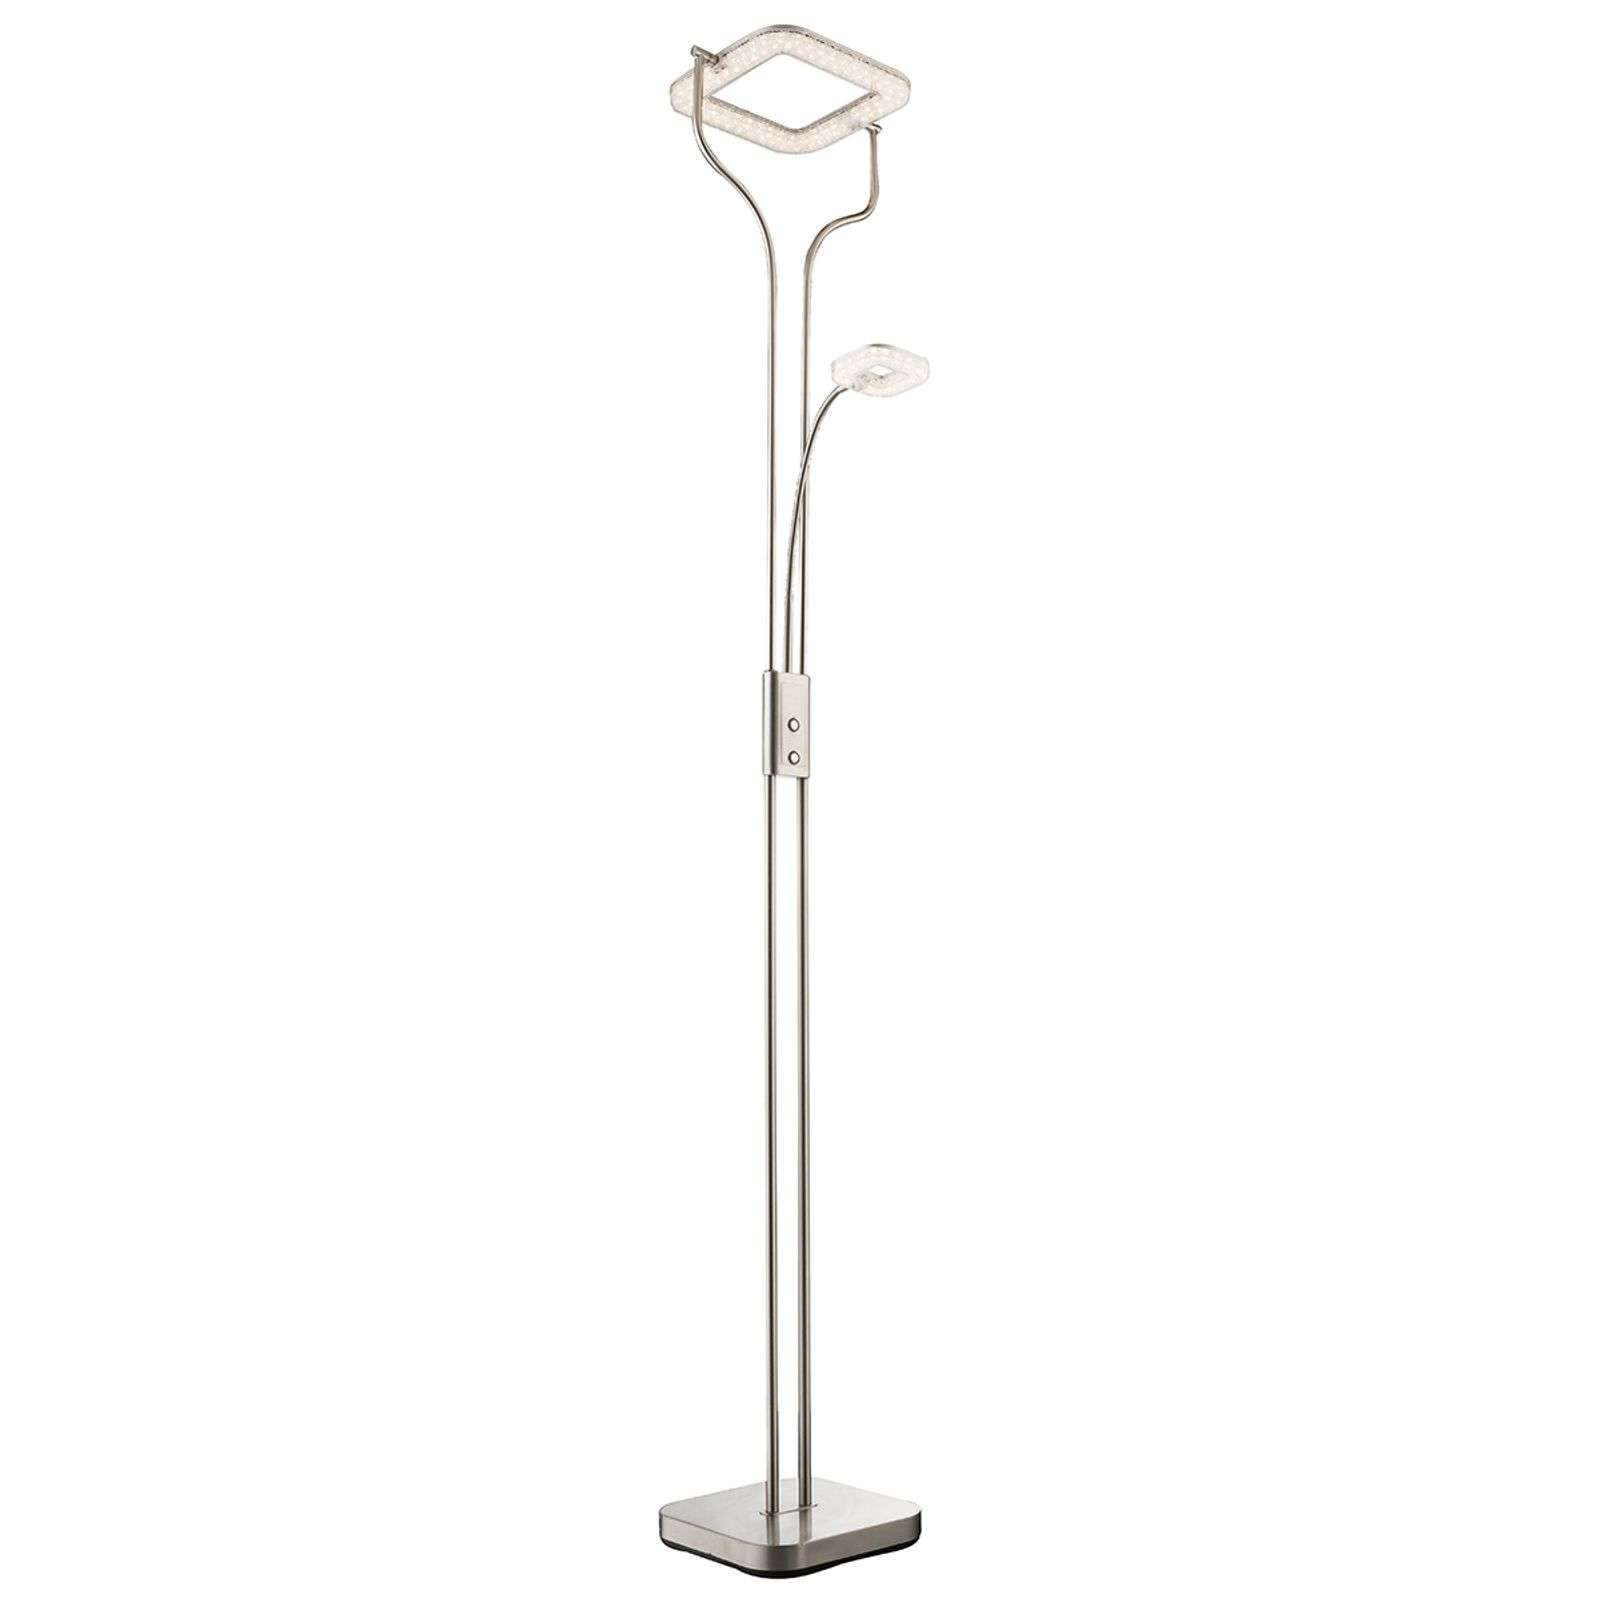 Lampadaire LED indirect Varai, abat-jour carré